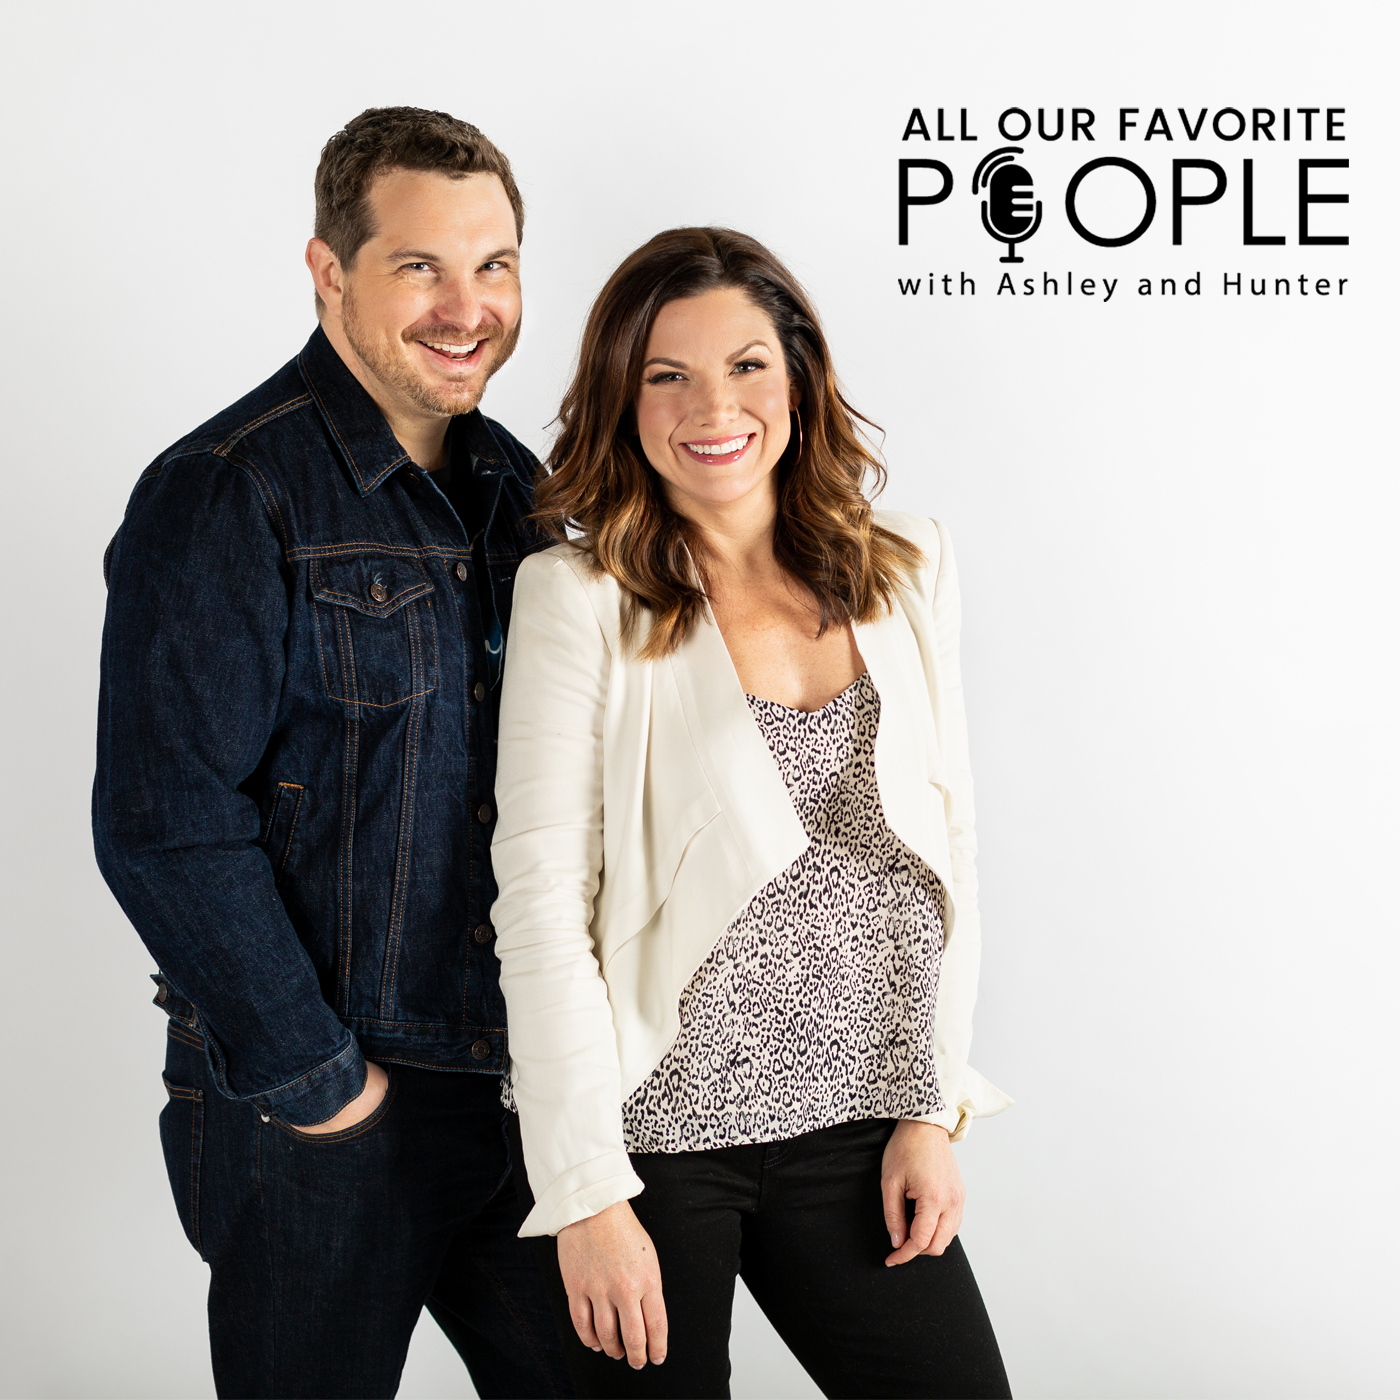 ALL OUR FAVORITE PEOPLE - Hosted by long time friends and Nashville-based media personalities Ashley Eicher and Hunter Kelly, The All Our Favorite People Podcast shines a light on people doing amazing things in the world. From artists and entertainers to authors and business leaders, All Our Favorite People features in-depth conversations that dig into the heart, hilarity and messiness that is life.AllOurFavoritePeople.comListen on Apple PodcastsListen on Spotify